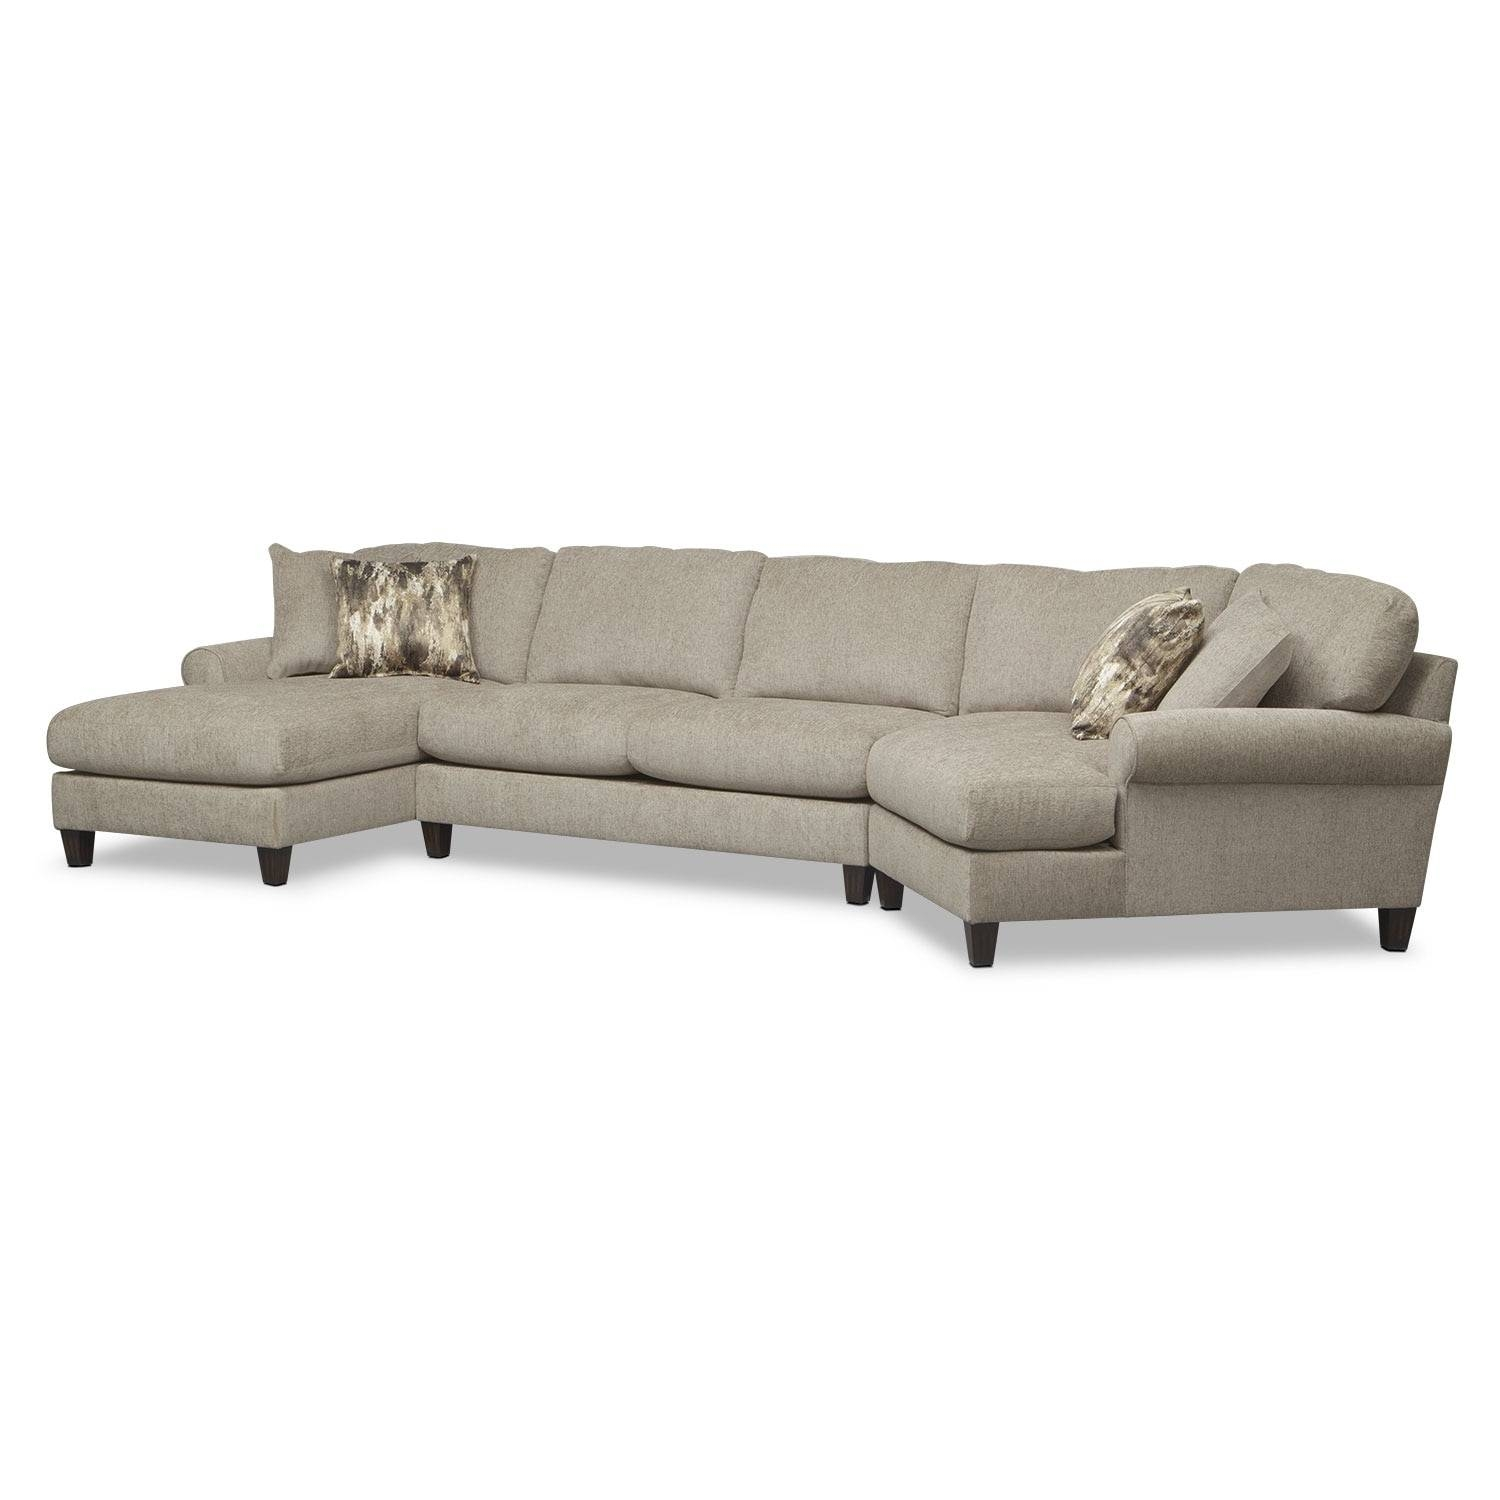 Karma 3-Piece Sectional With Right-Facing Cuddler And Left-Facing throughout Sectional Sofa With Cuddler Chaise (Image 12 of 25)